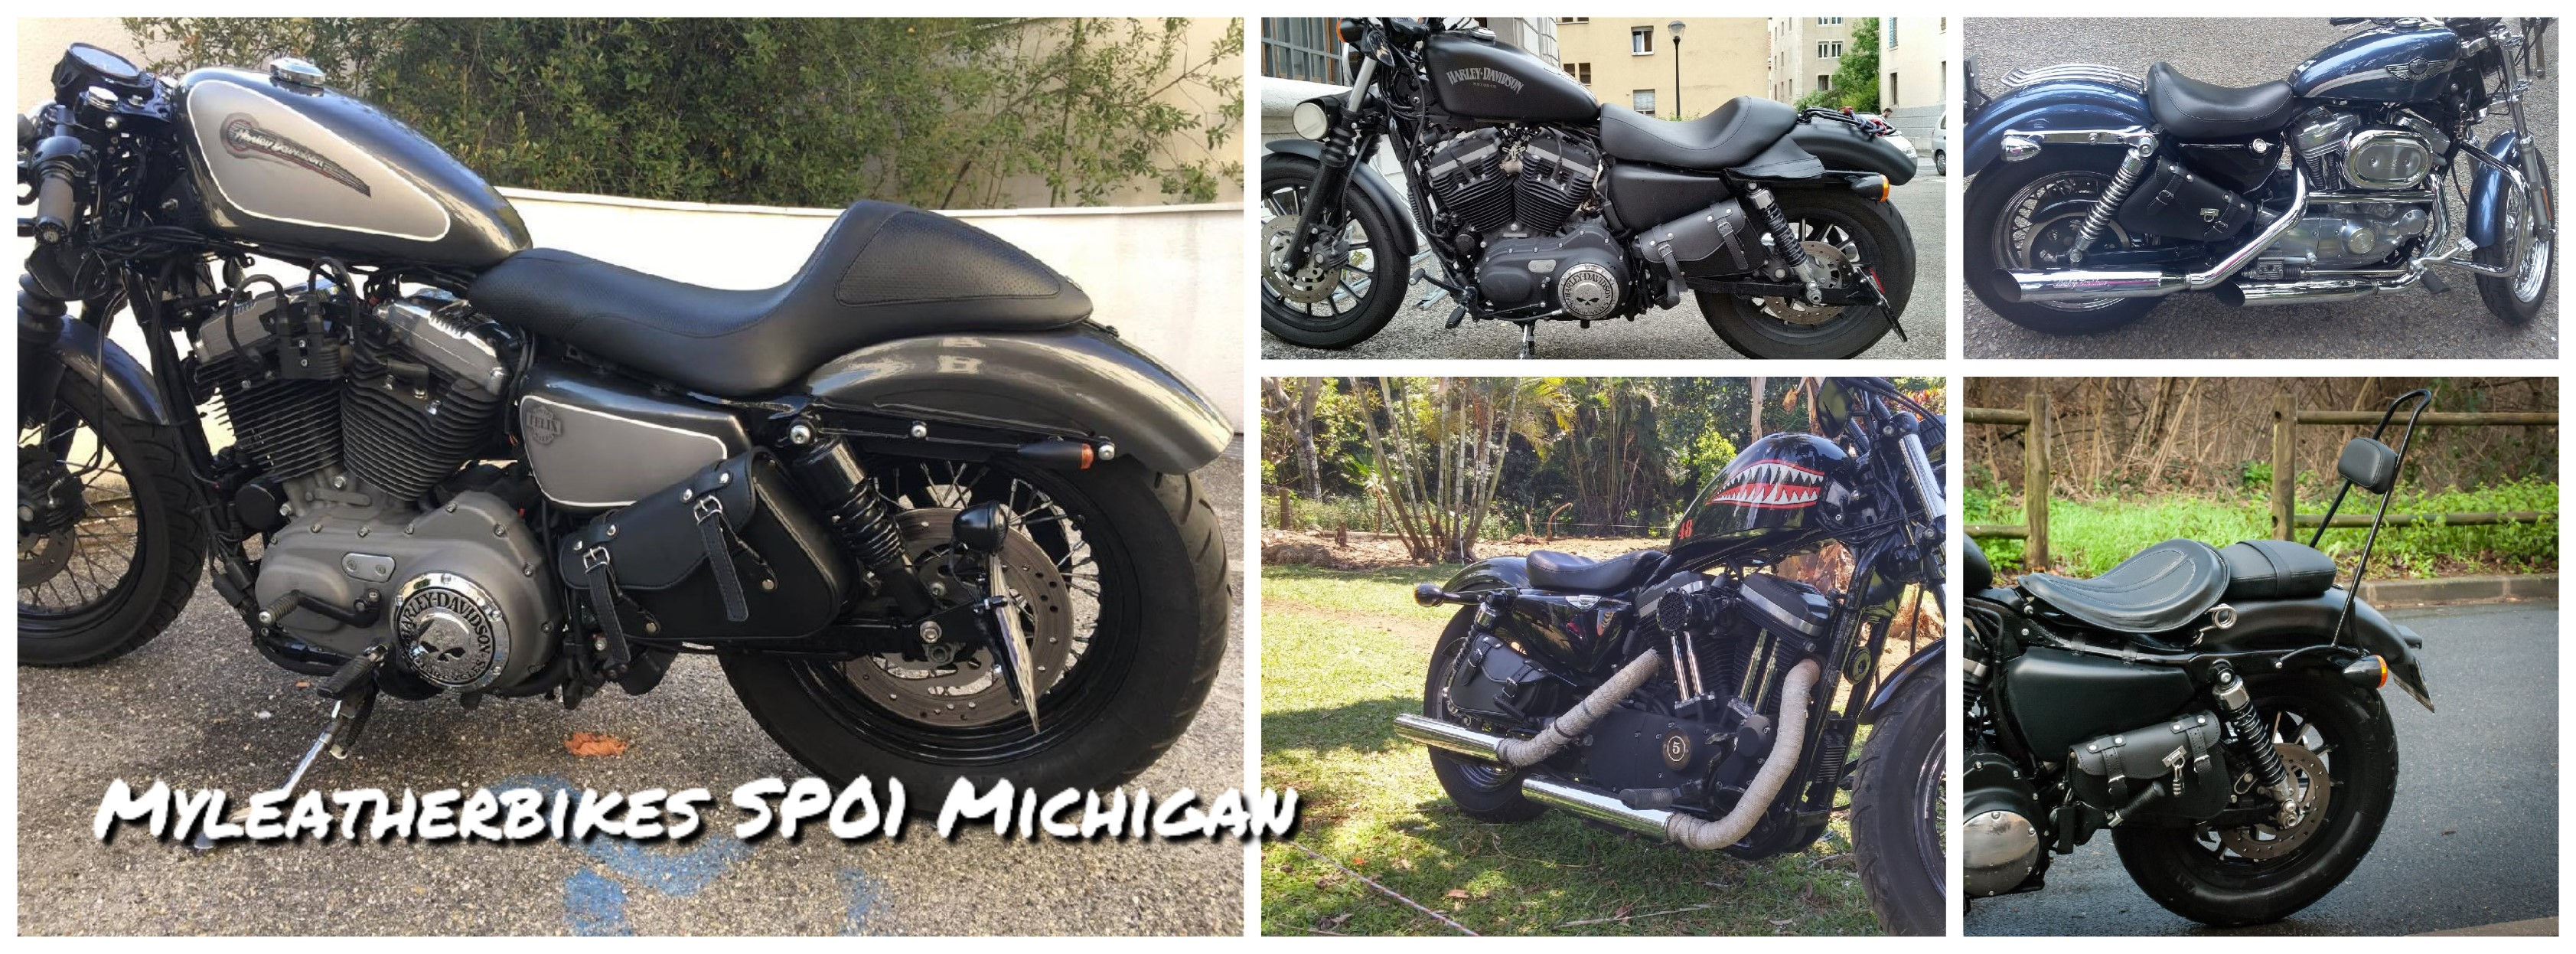 sacoche-sportster-sp01-michigan